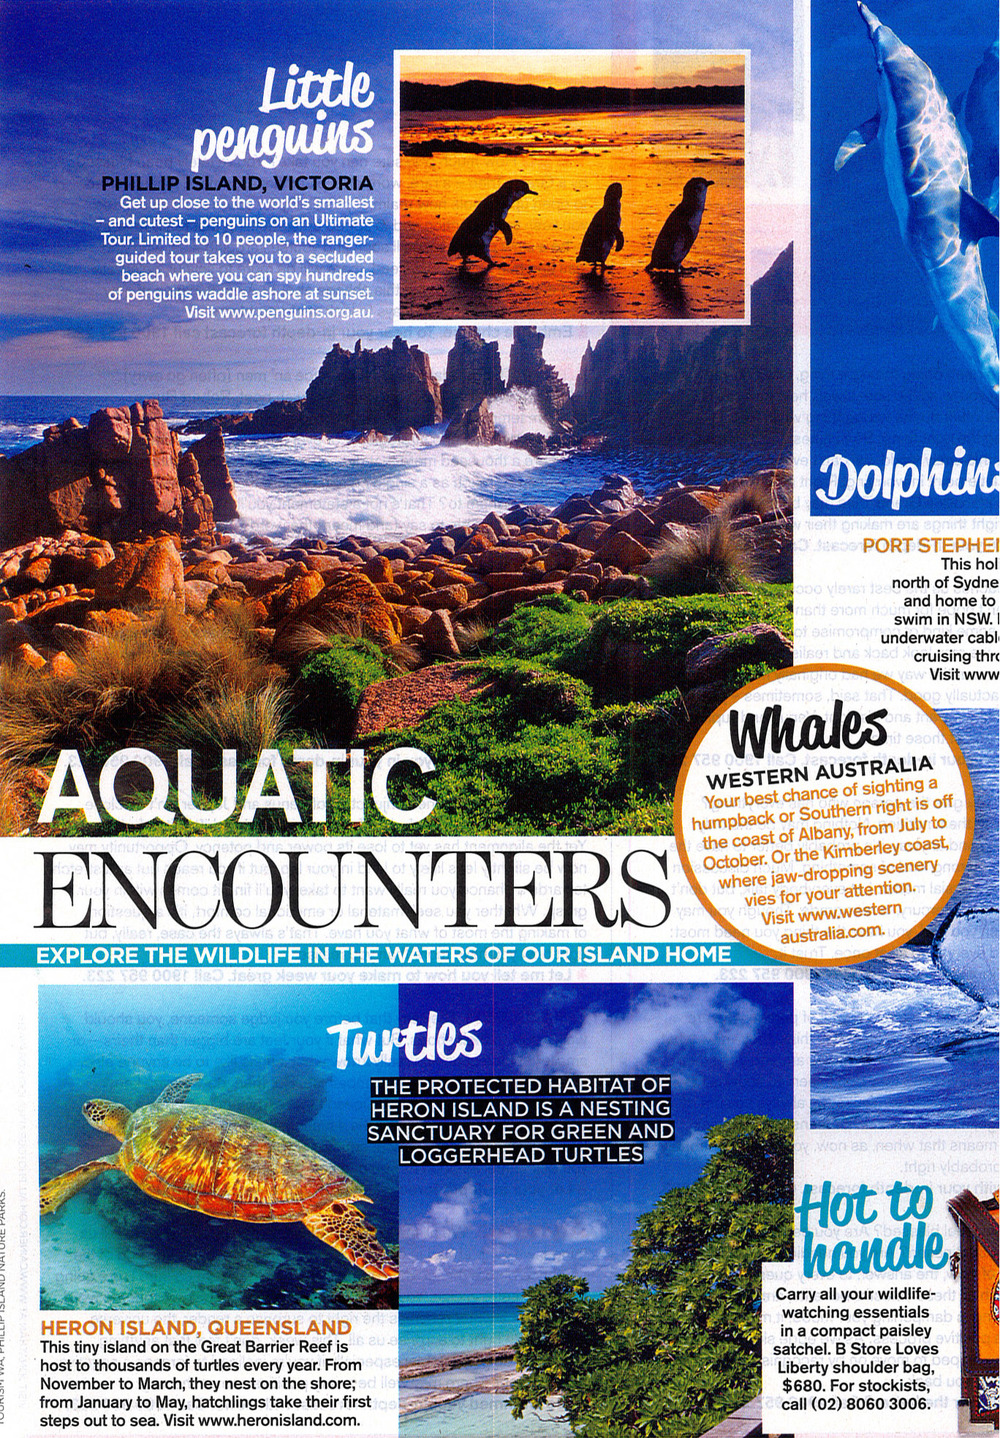 Sunday Herald Sun Sunday Magazine Phillip Island Nature Parks Feature.jpg